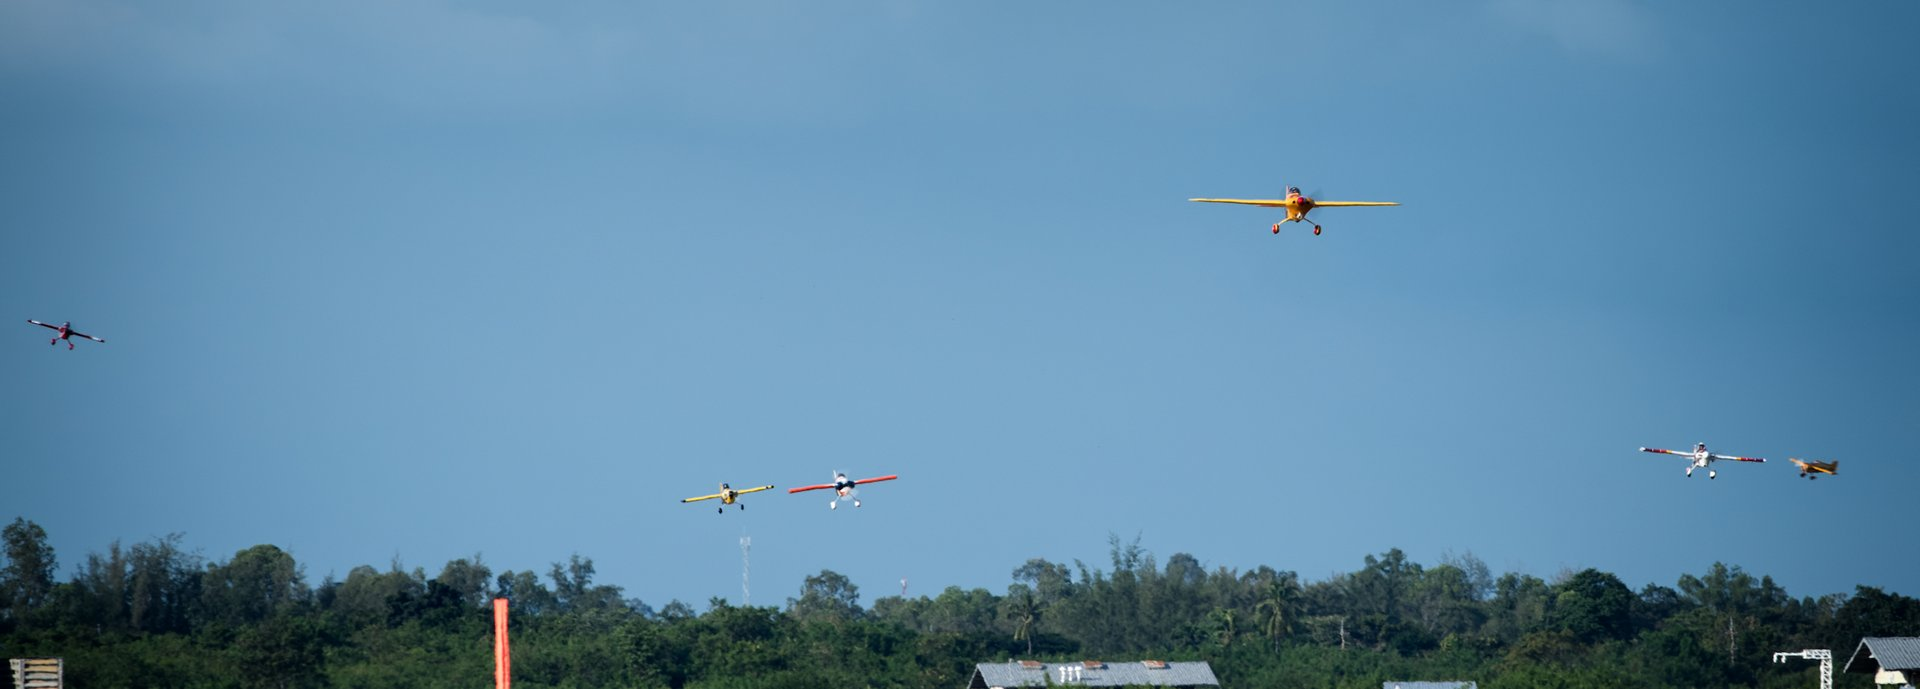 First Teams Enter The Inaugural Electric Aircraft Air Race